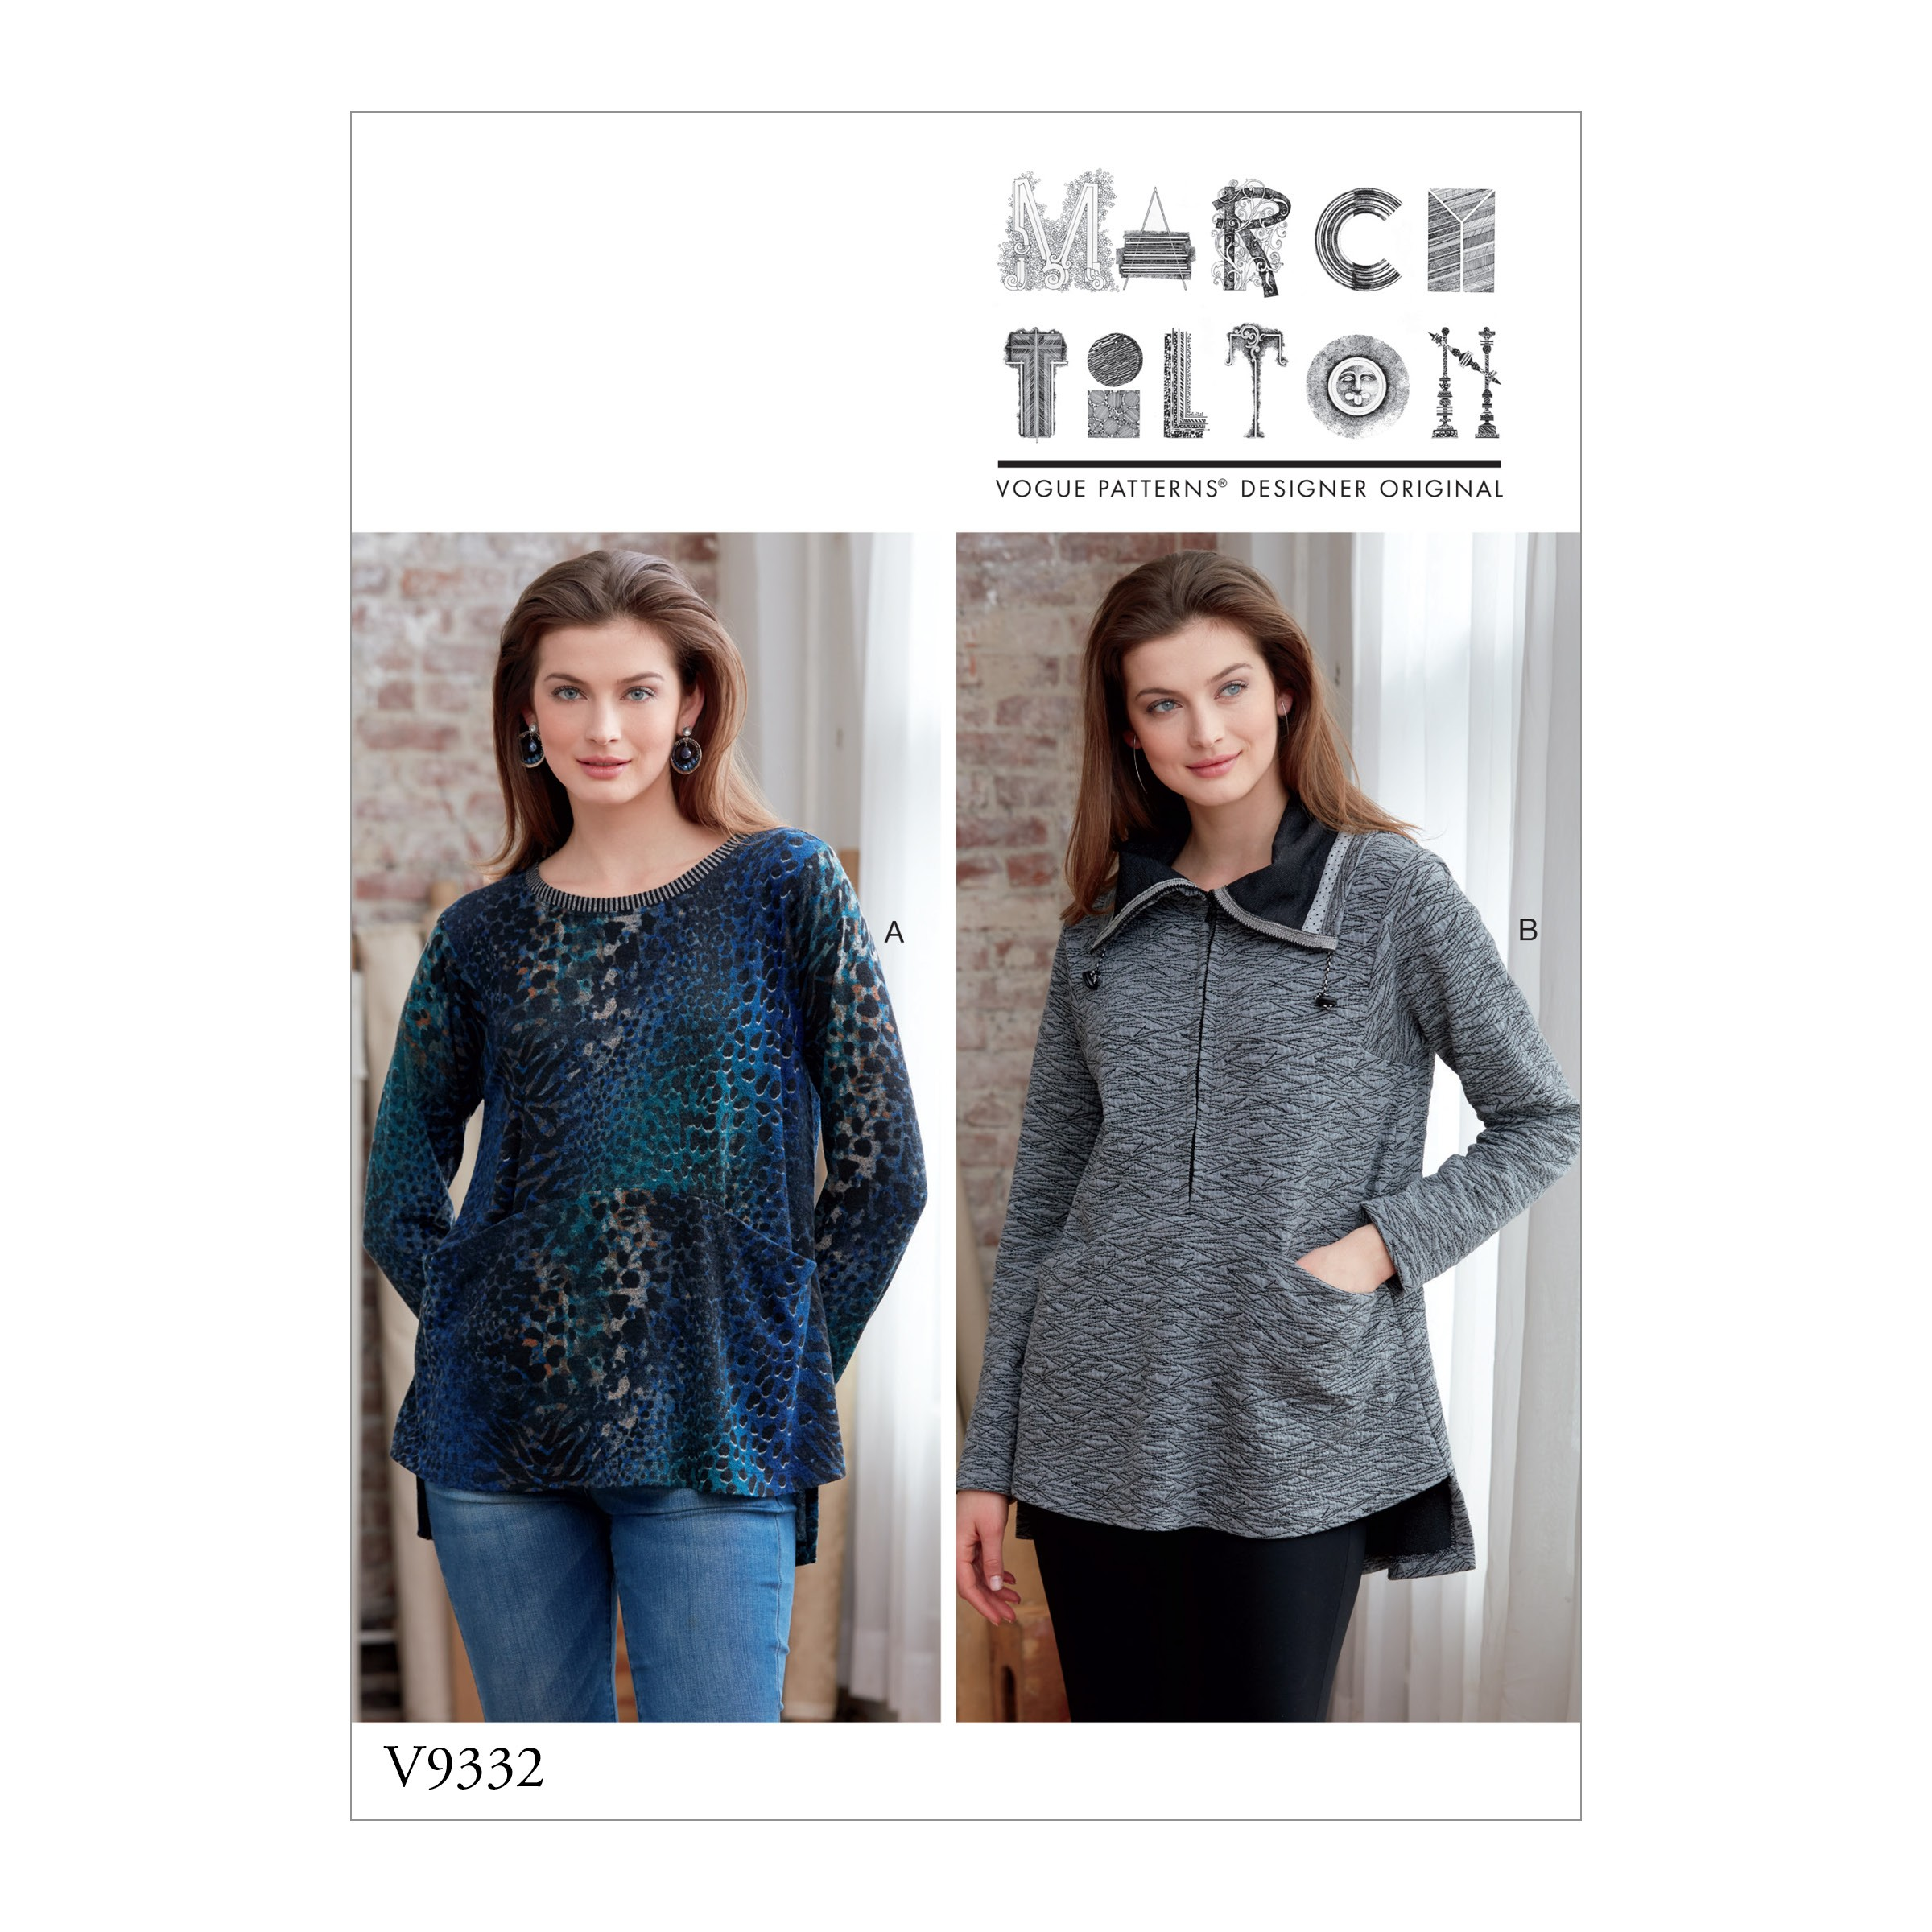 Vogue Sewing Pattern V9332 Women's Top Jacket With Front Pockets